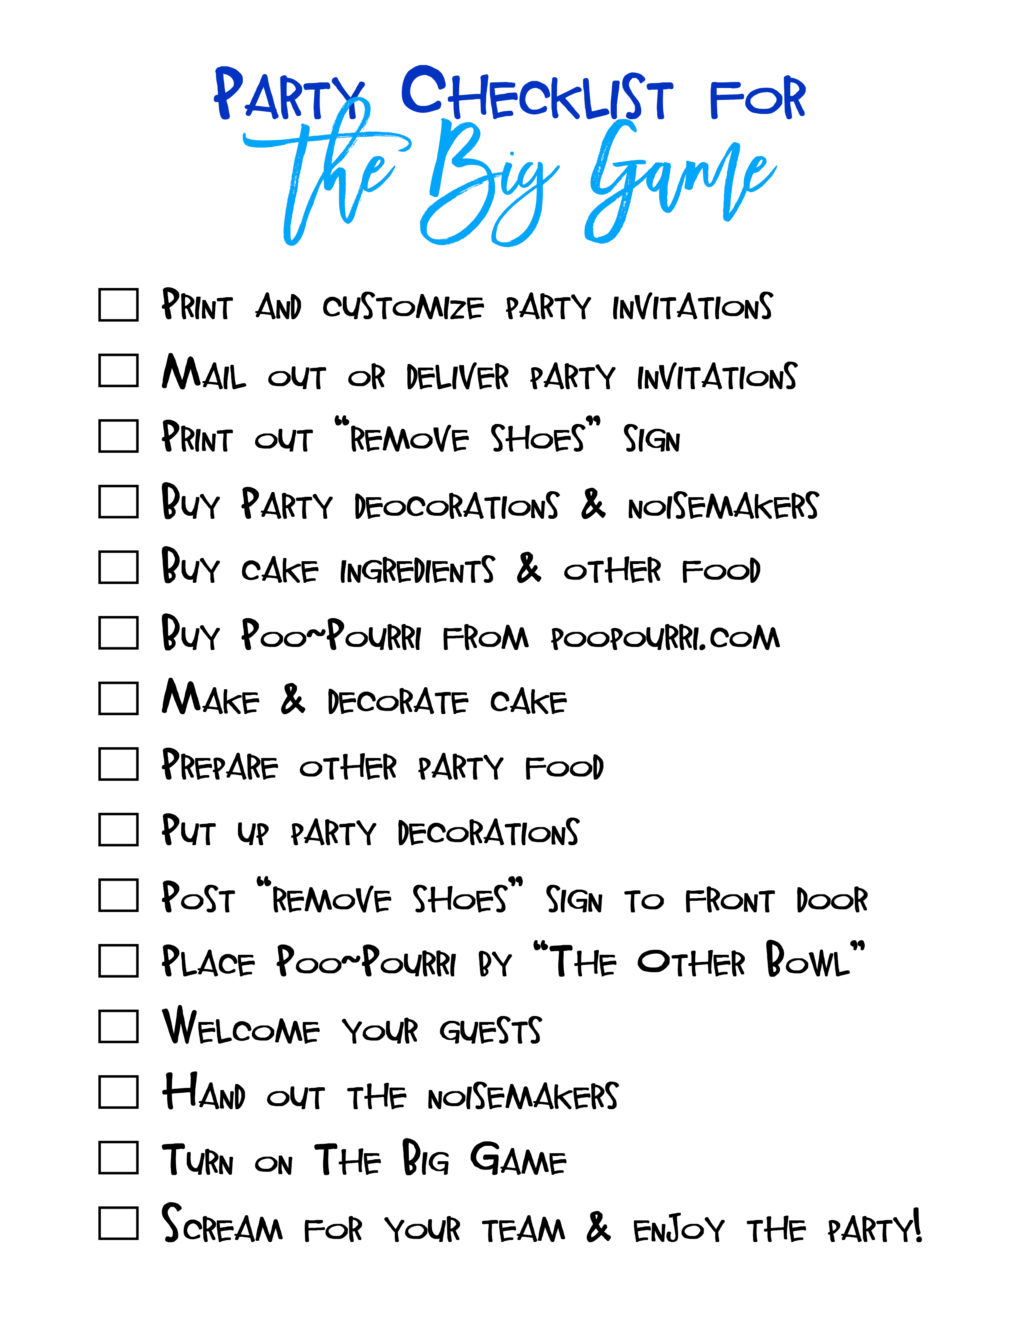 party checklist for the big game the diy lighthouse